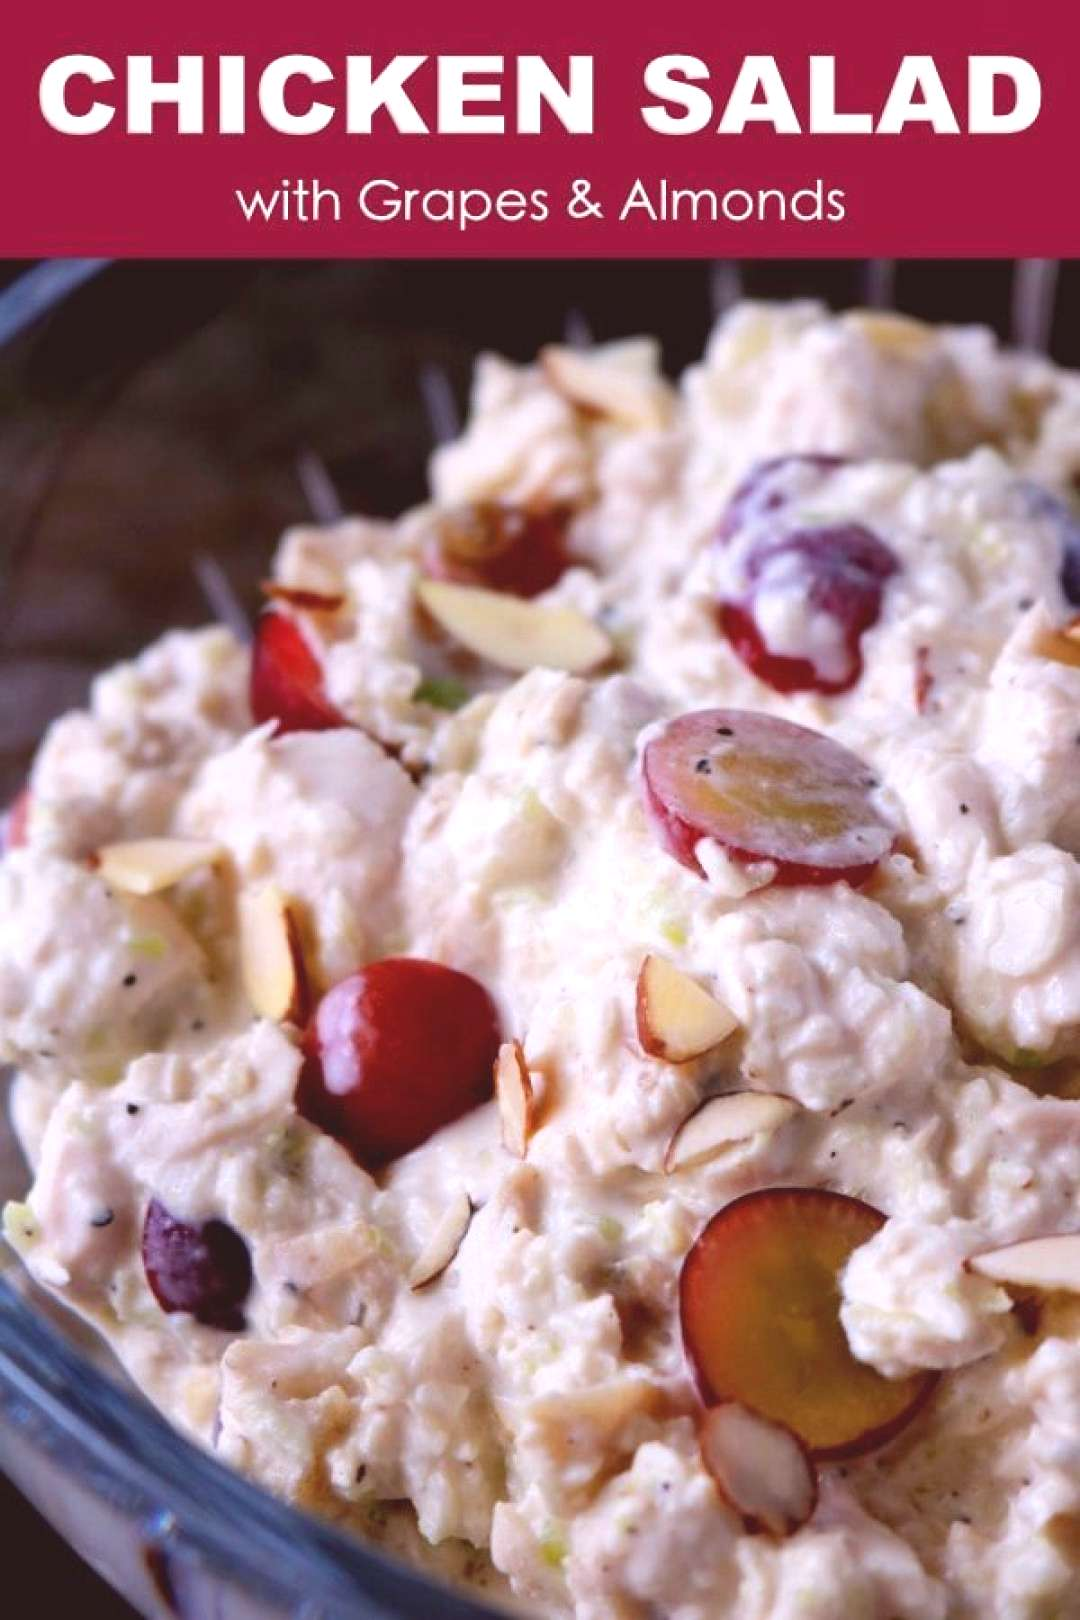 Chicken Salad with Grapes and Almonds,A traditional chicken salad with grapes and almonds wit... Ch